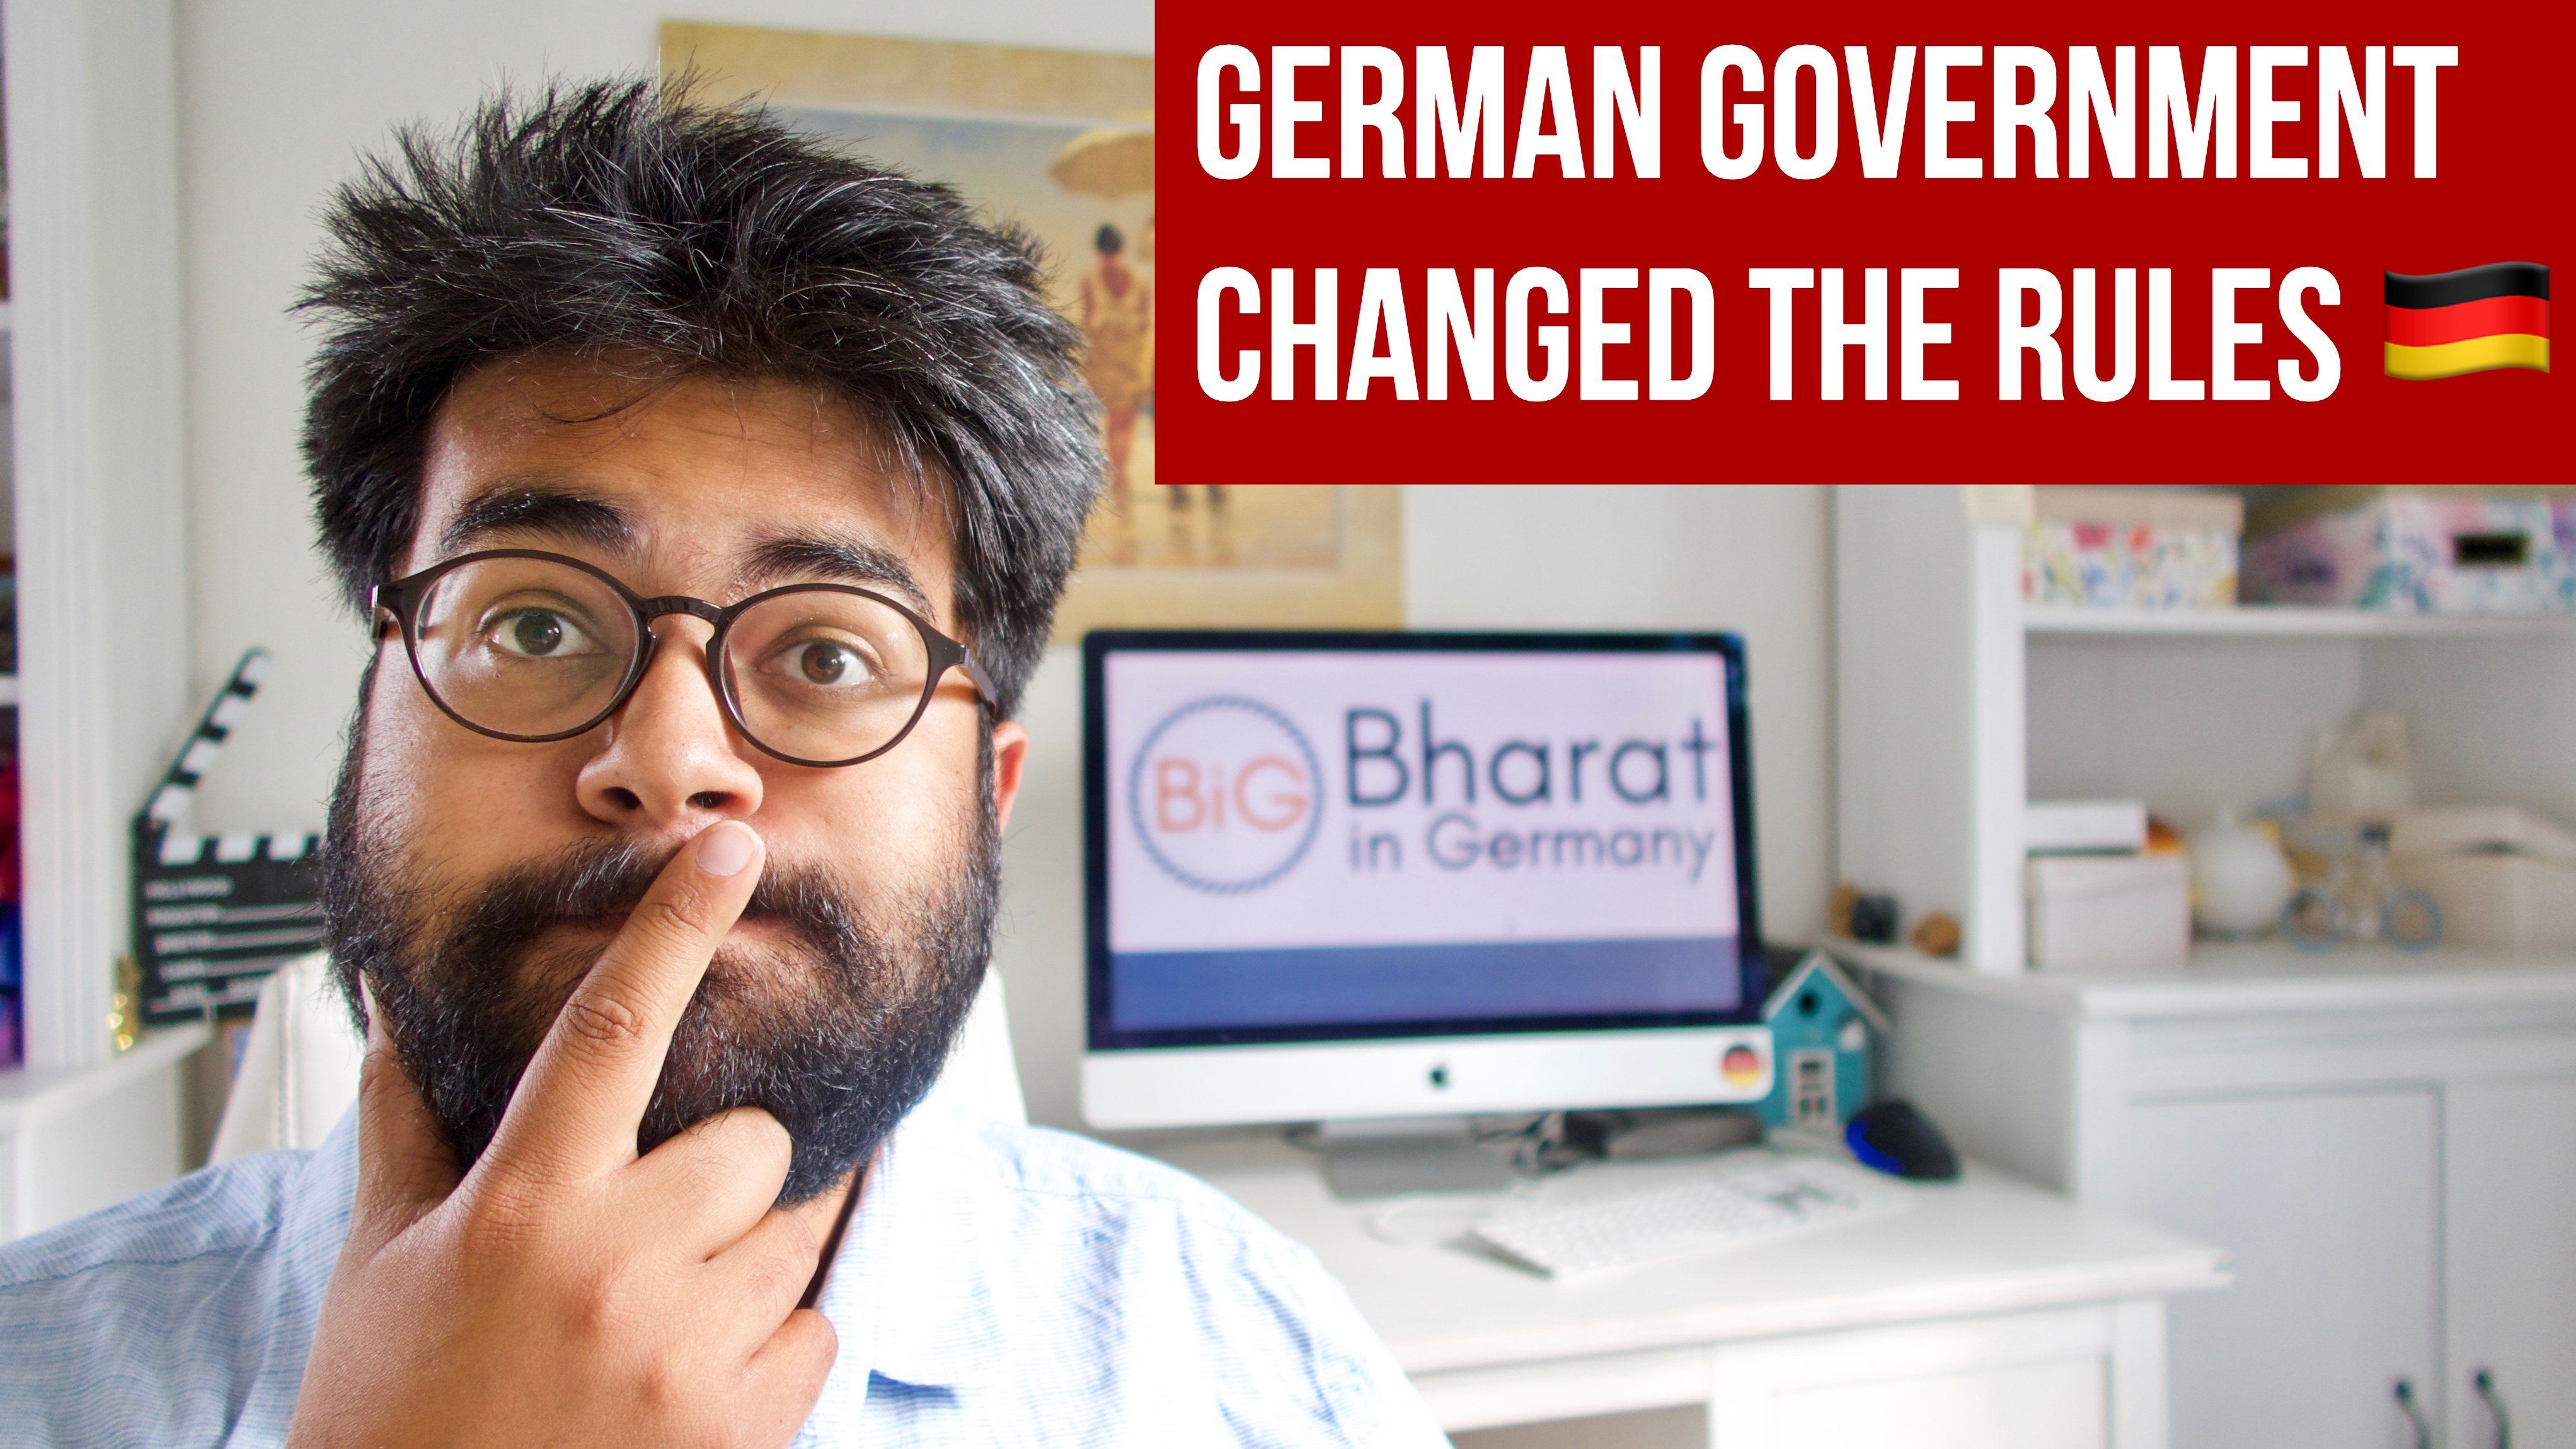 German Government changes Laws: Blocked Account just got more expensive!